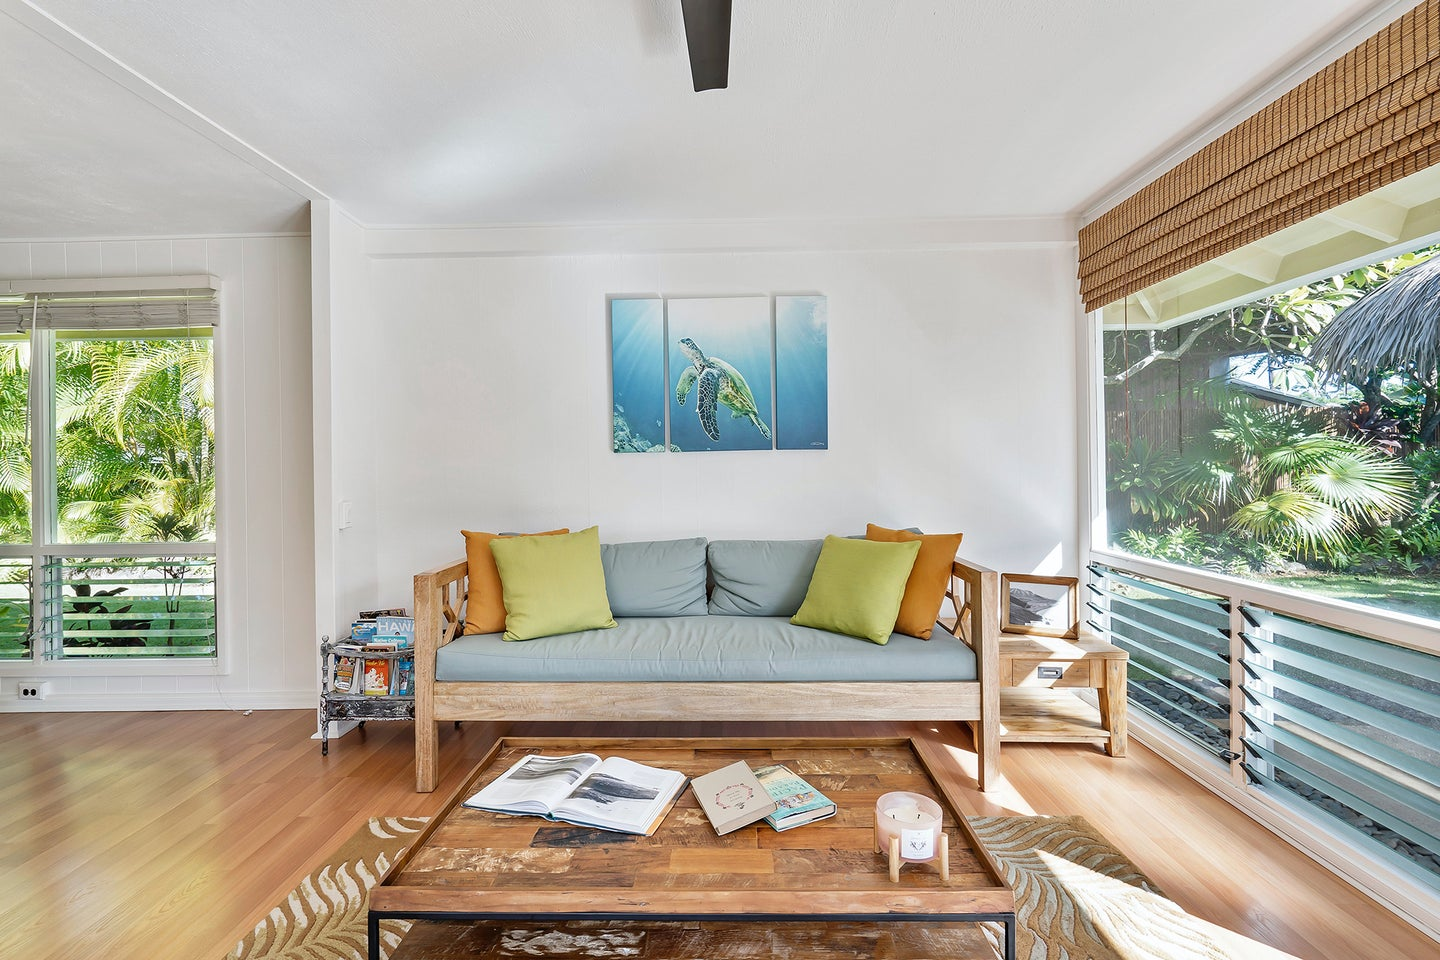 Living room with a couch, wooden coffee table, and a turtle painting on the wall